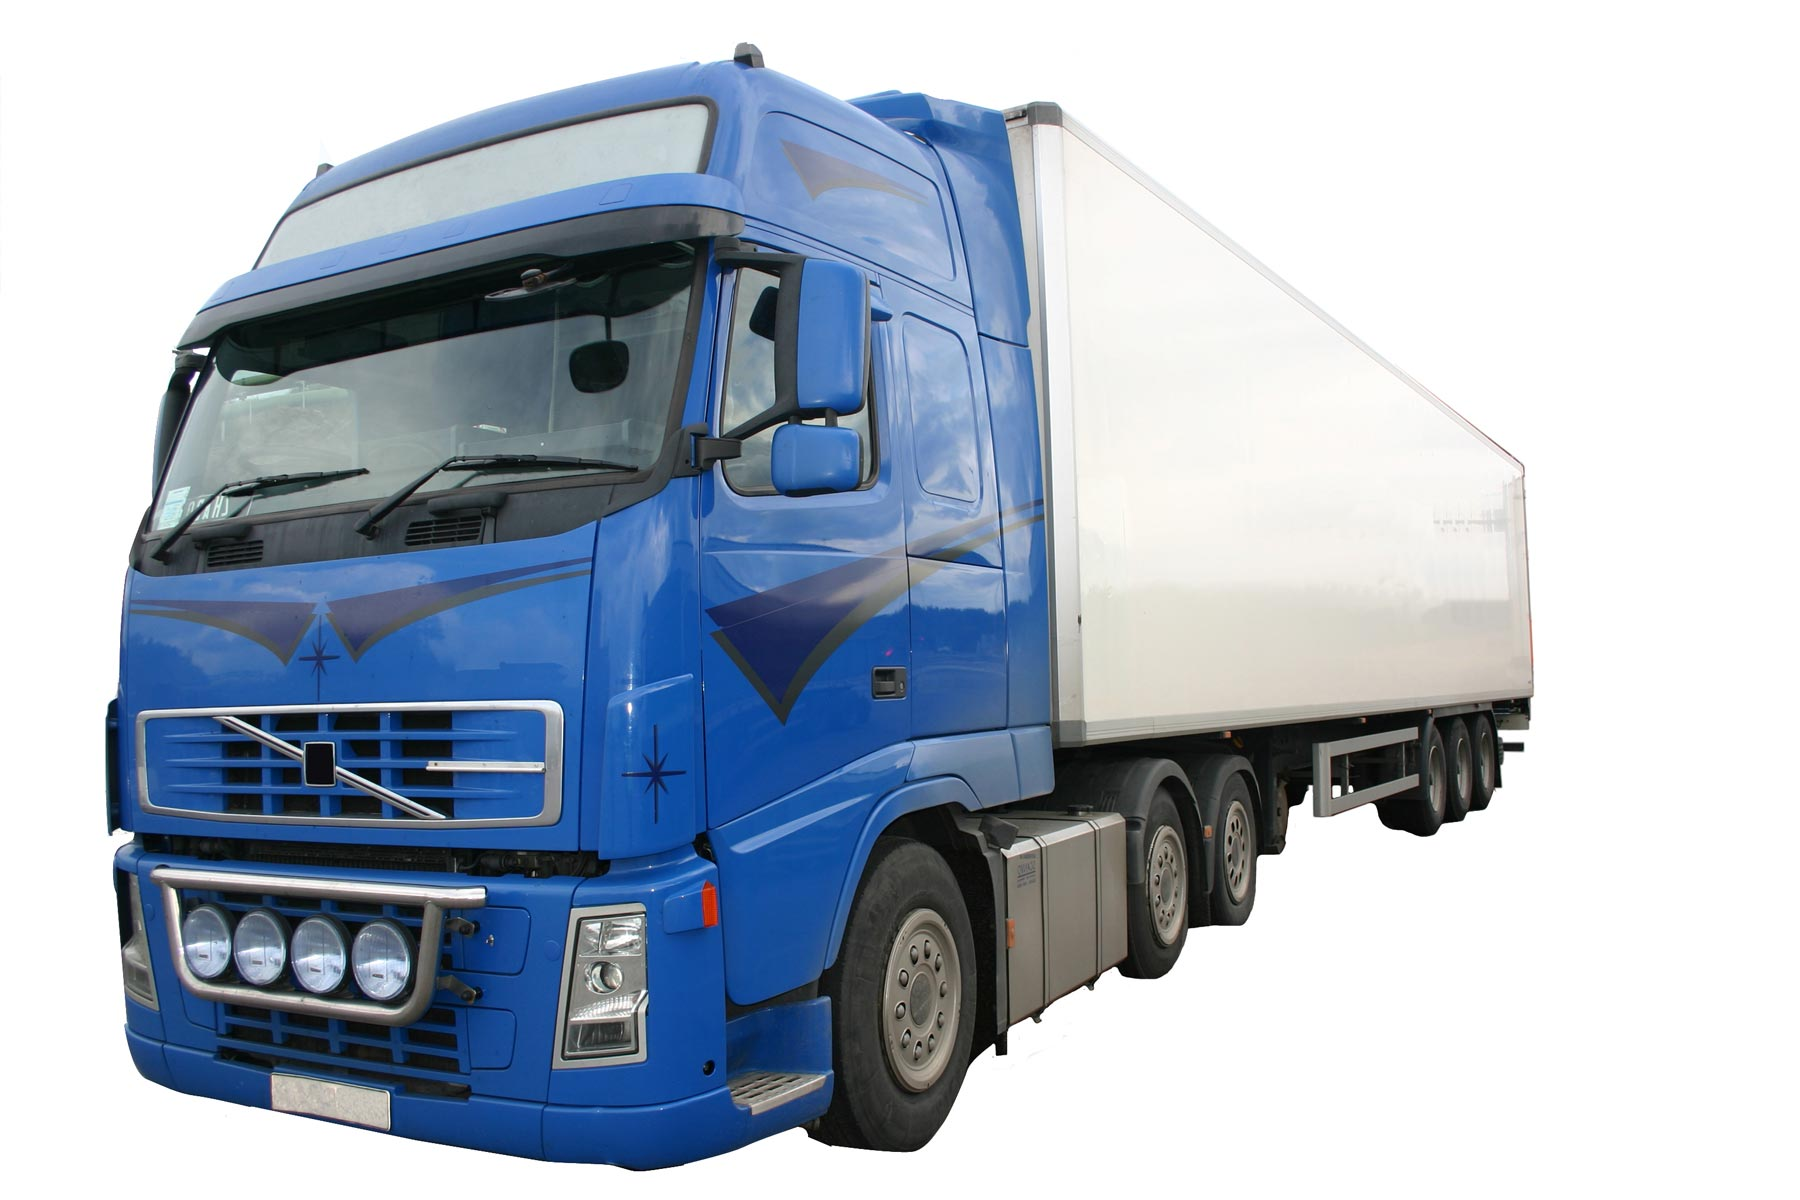 Lorry for transport manager course